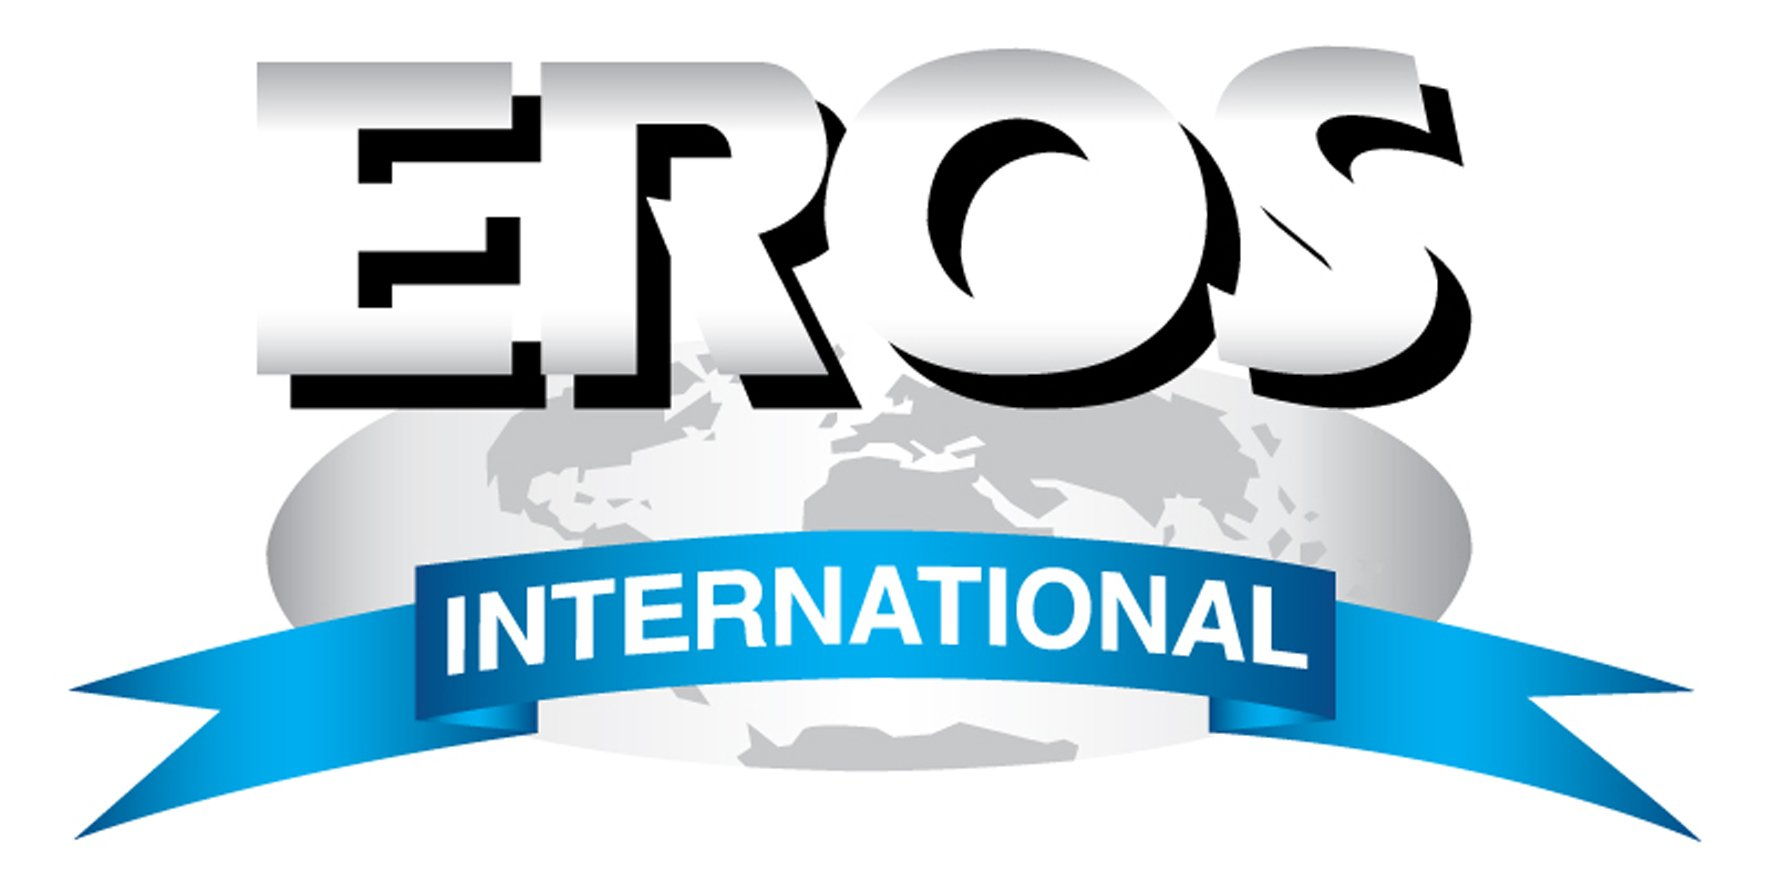 Eros International plc logo